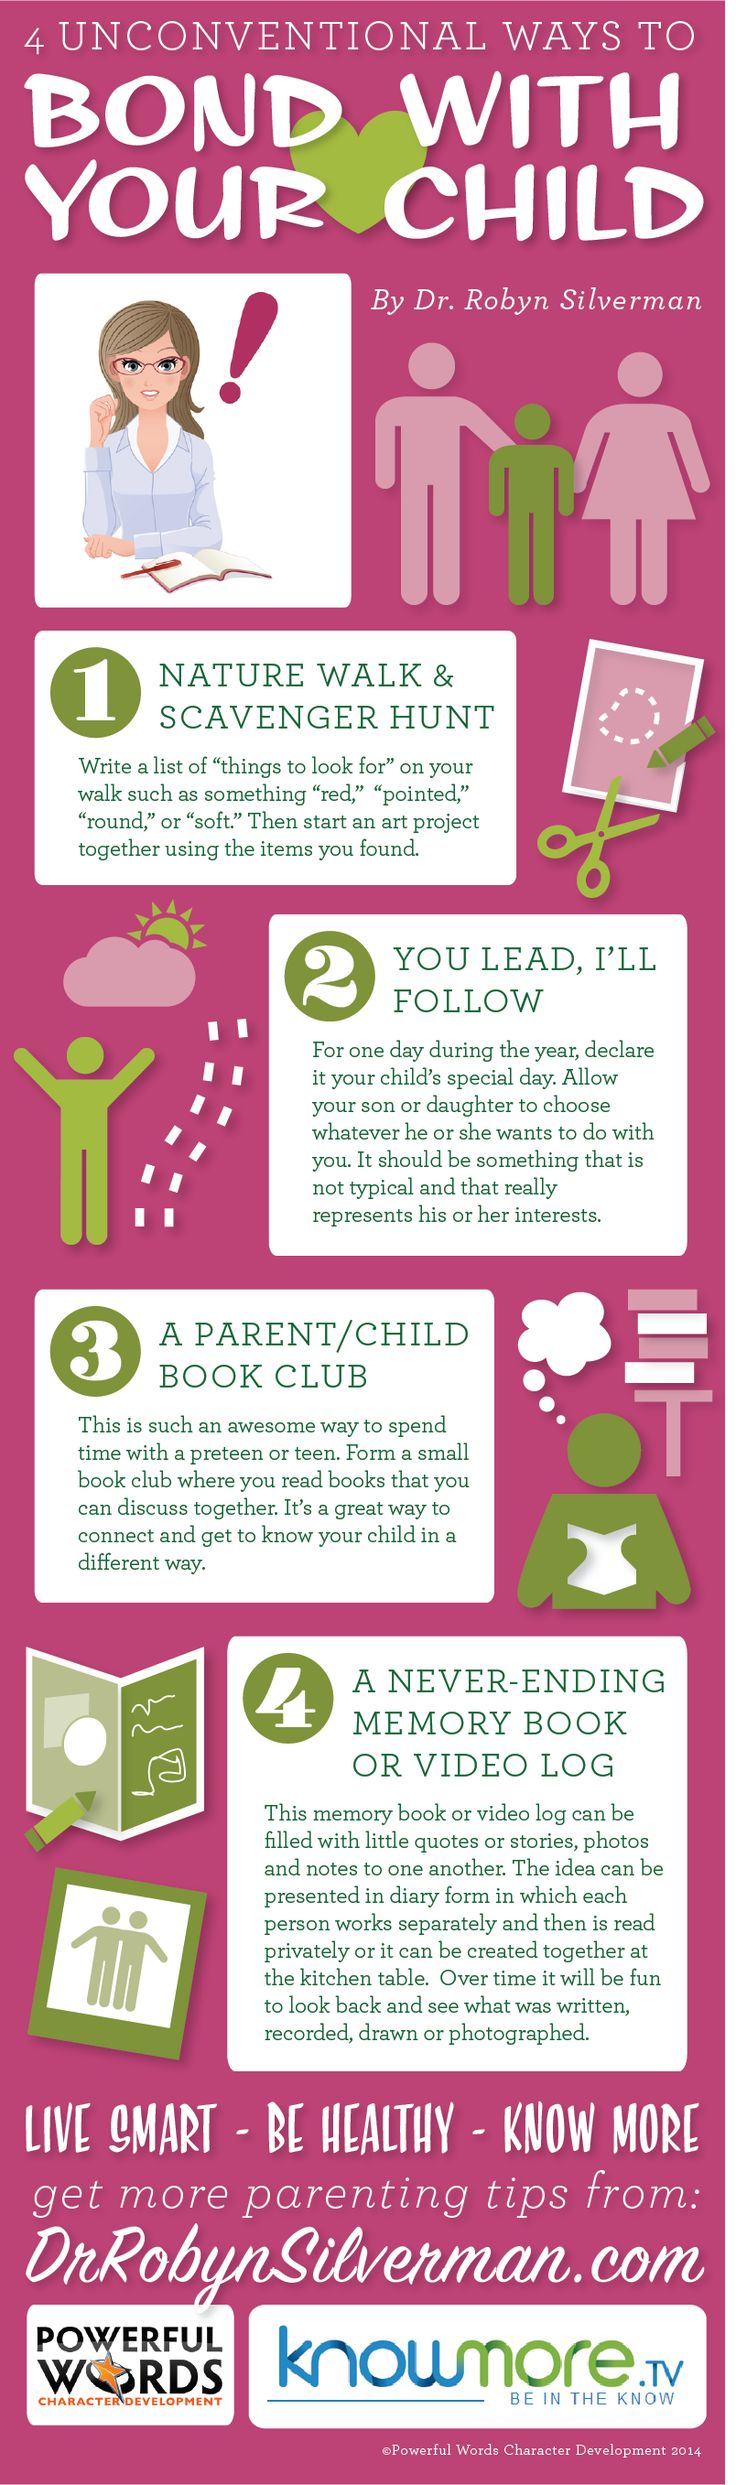 4 Unconventional Ways to Bond With Your Child #bonding #parenting #drrobyn